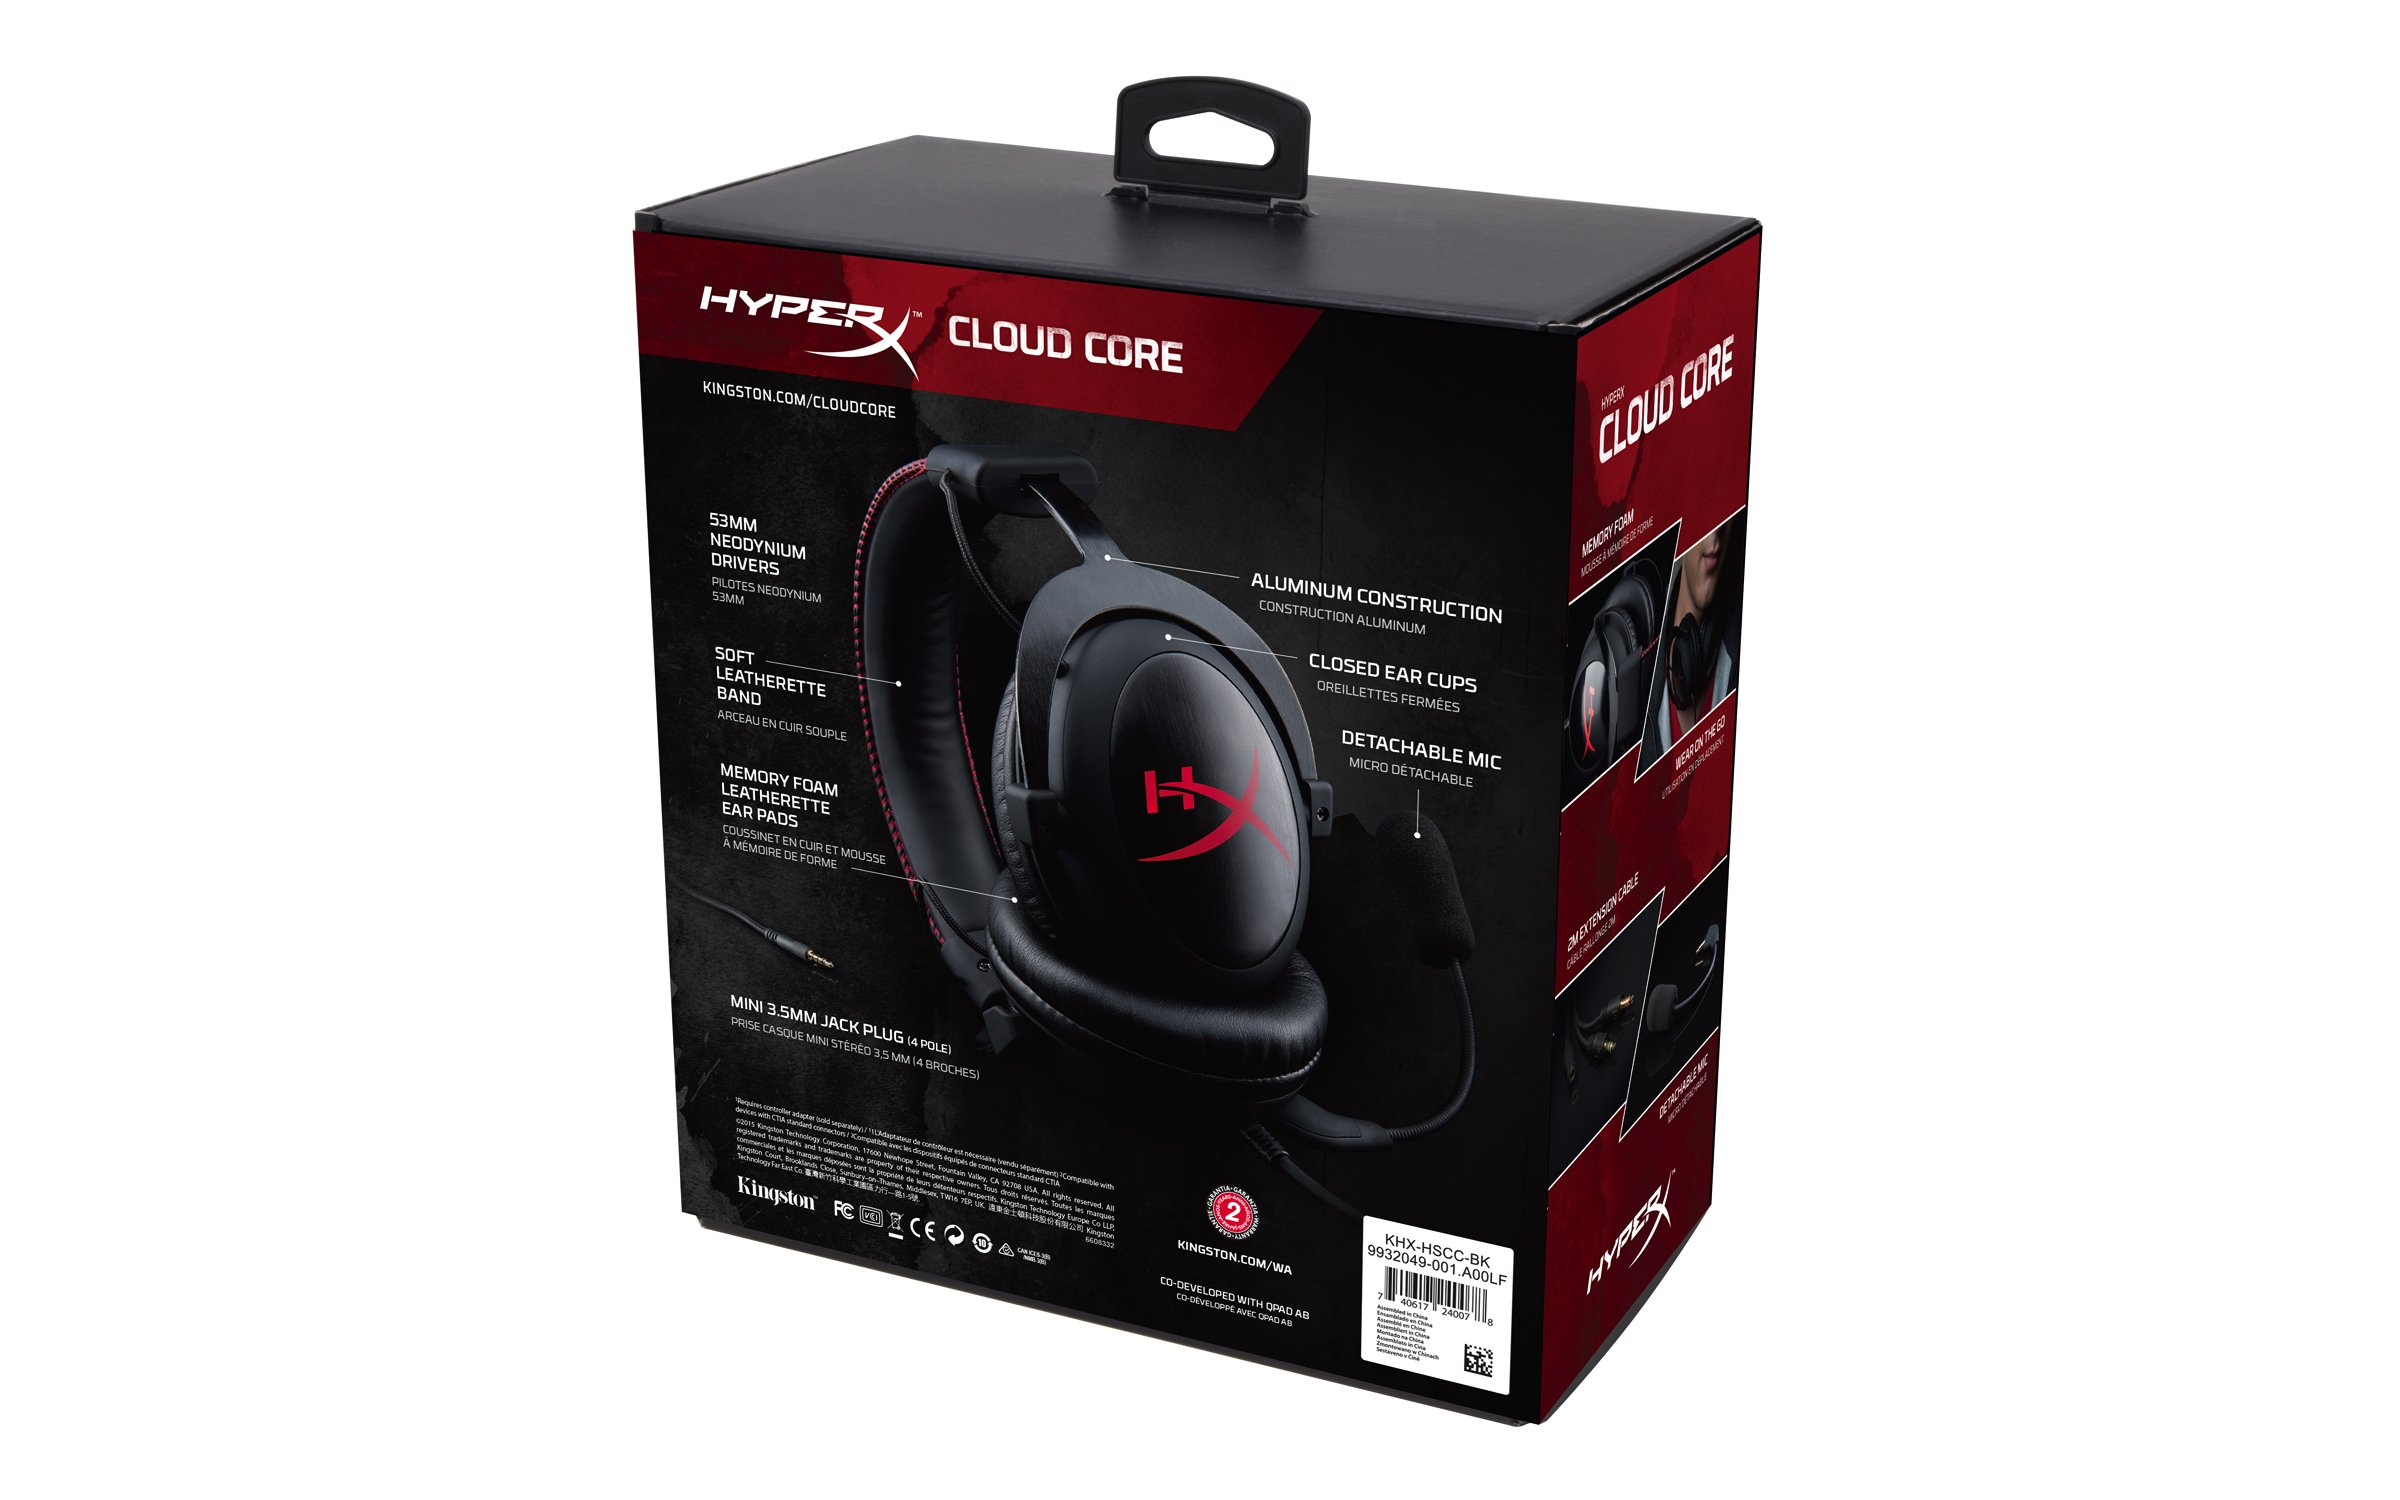 HyperX Cloud Core Gaming Headset - Durable Aluminum Frame - 53MM Drivers - Detachable Microphone - Works with PC/PS4 & Xbox One, Nintendo Switch (KHX-HSCC-BK) by HyperX (Image #6)